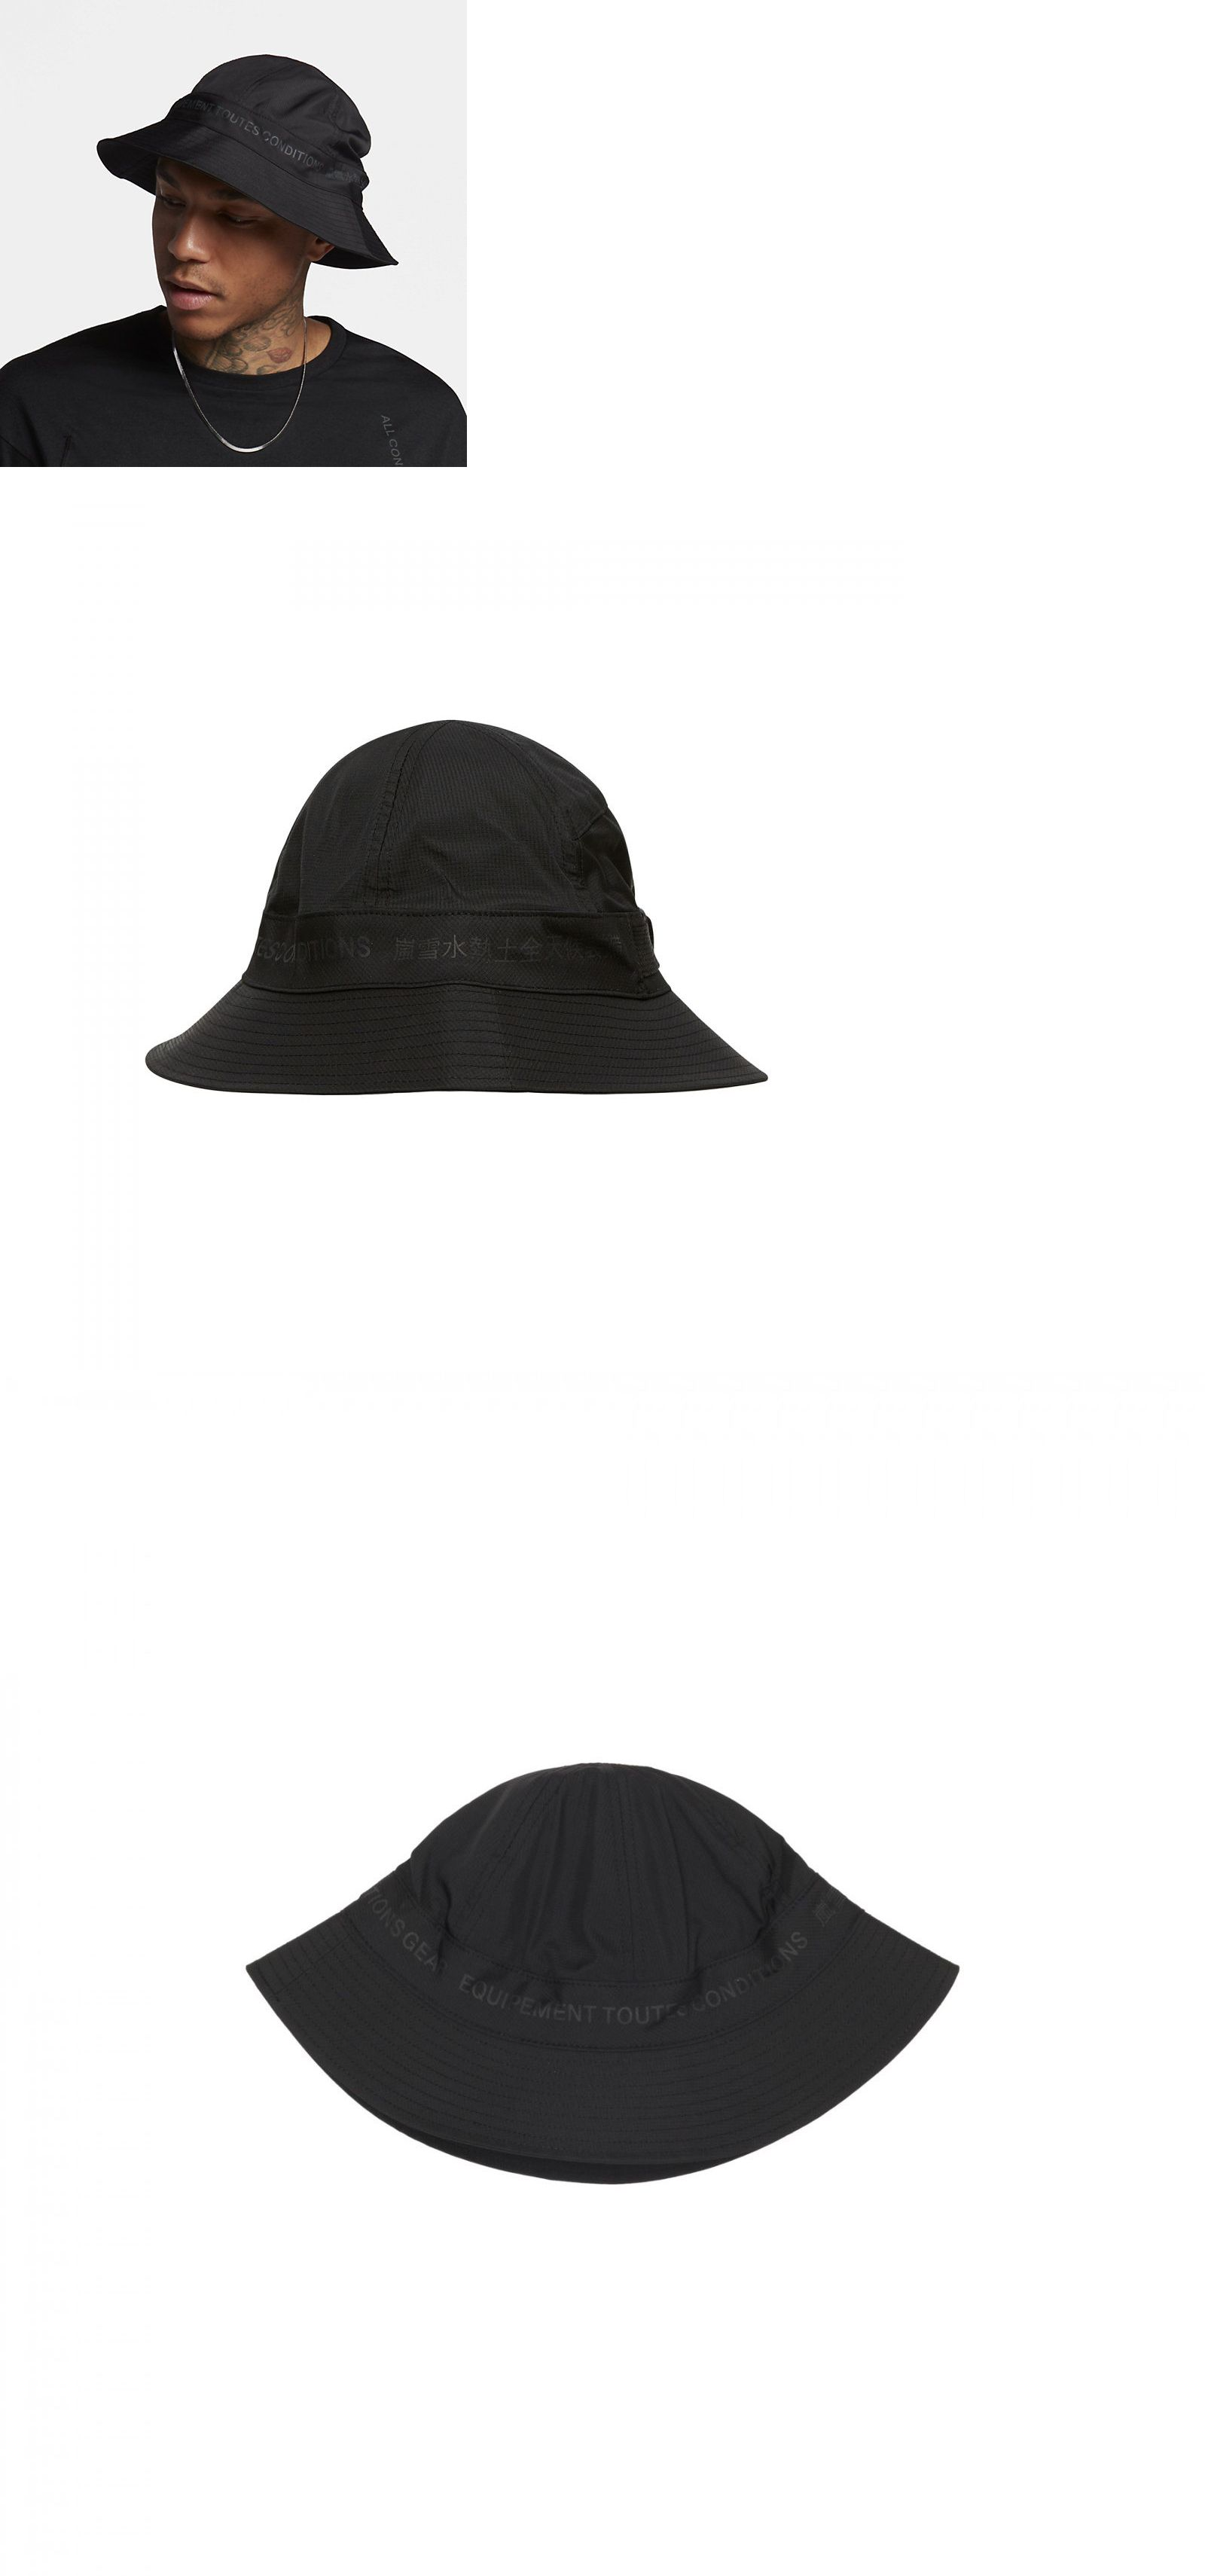 154033cb44358 Hats 163543  New With Tags Nikelab Acg Bucket Hat Black Acronym 907821-010  Cap In Hand -  BUY IT NOW ONLY   188 on eBay!